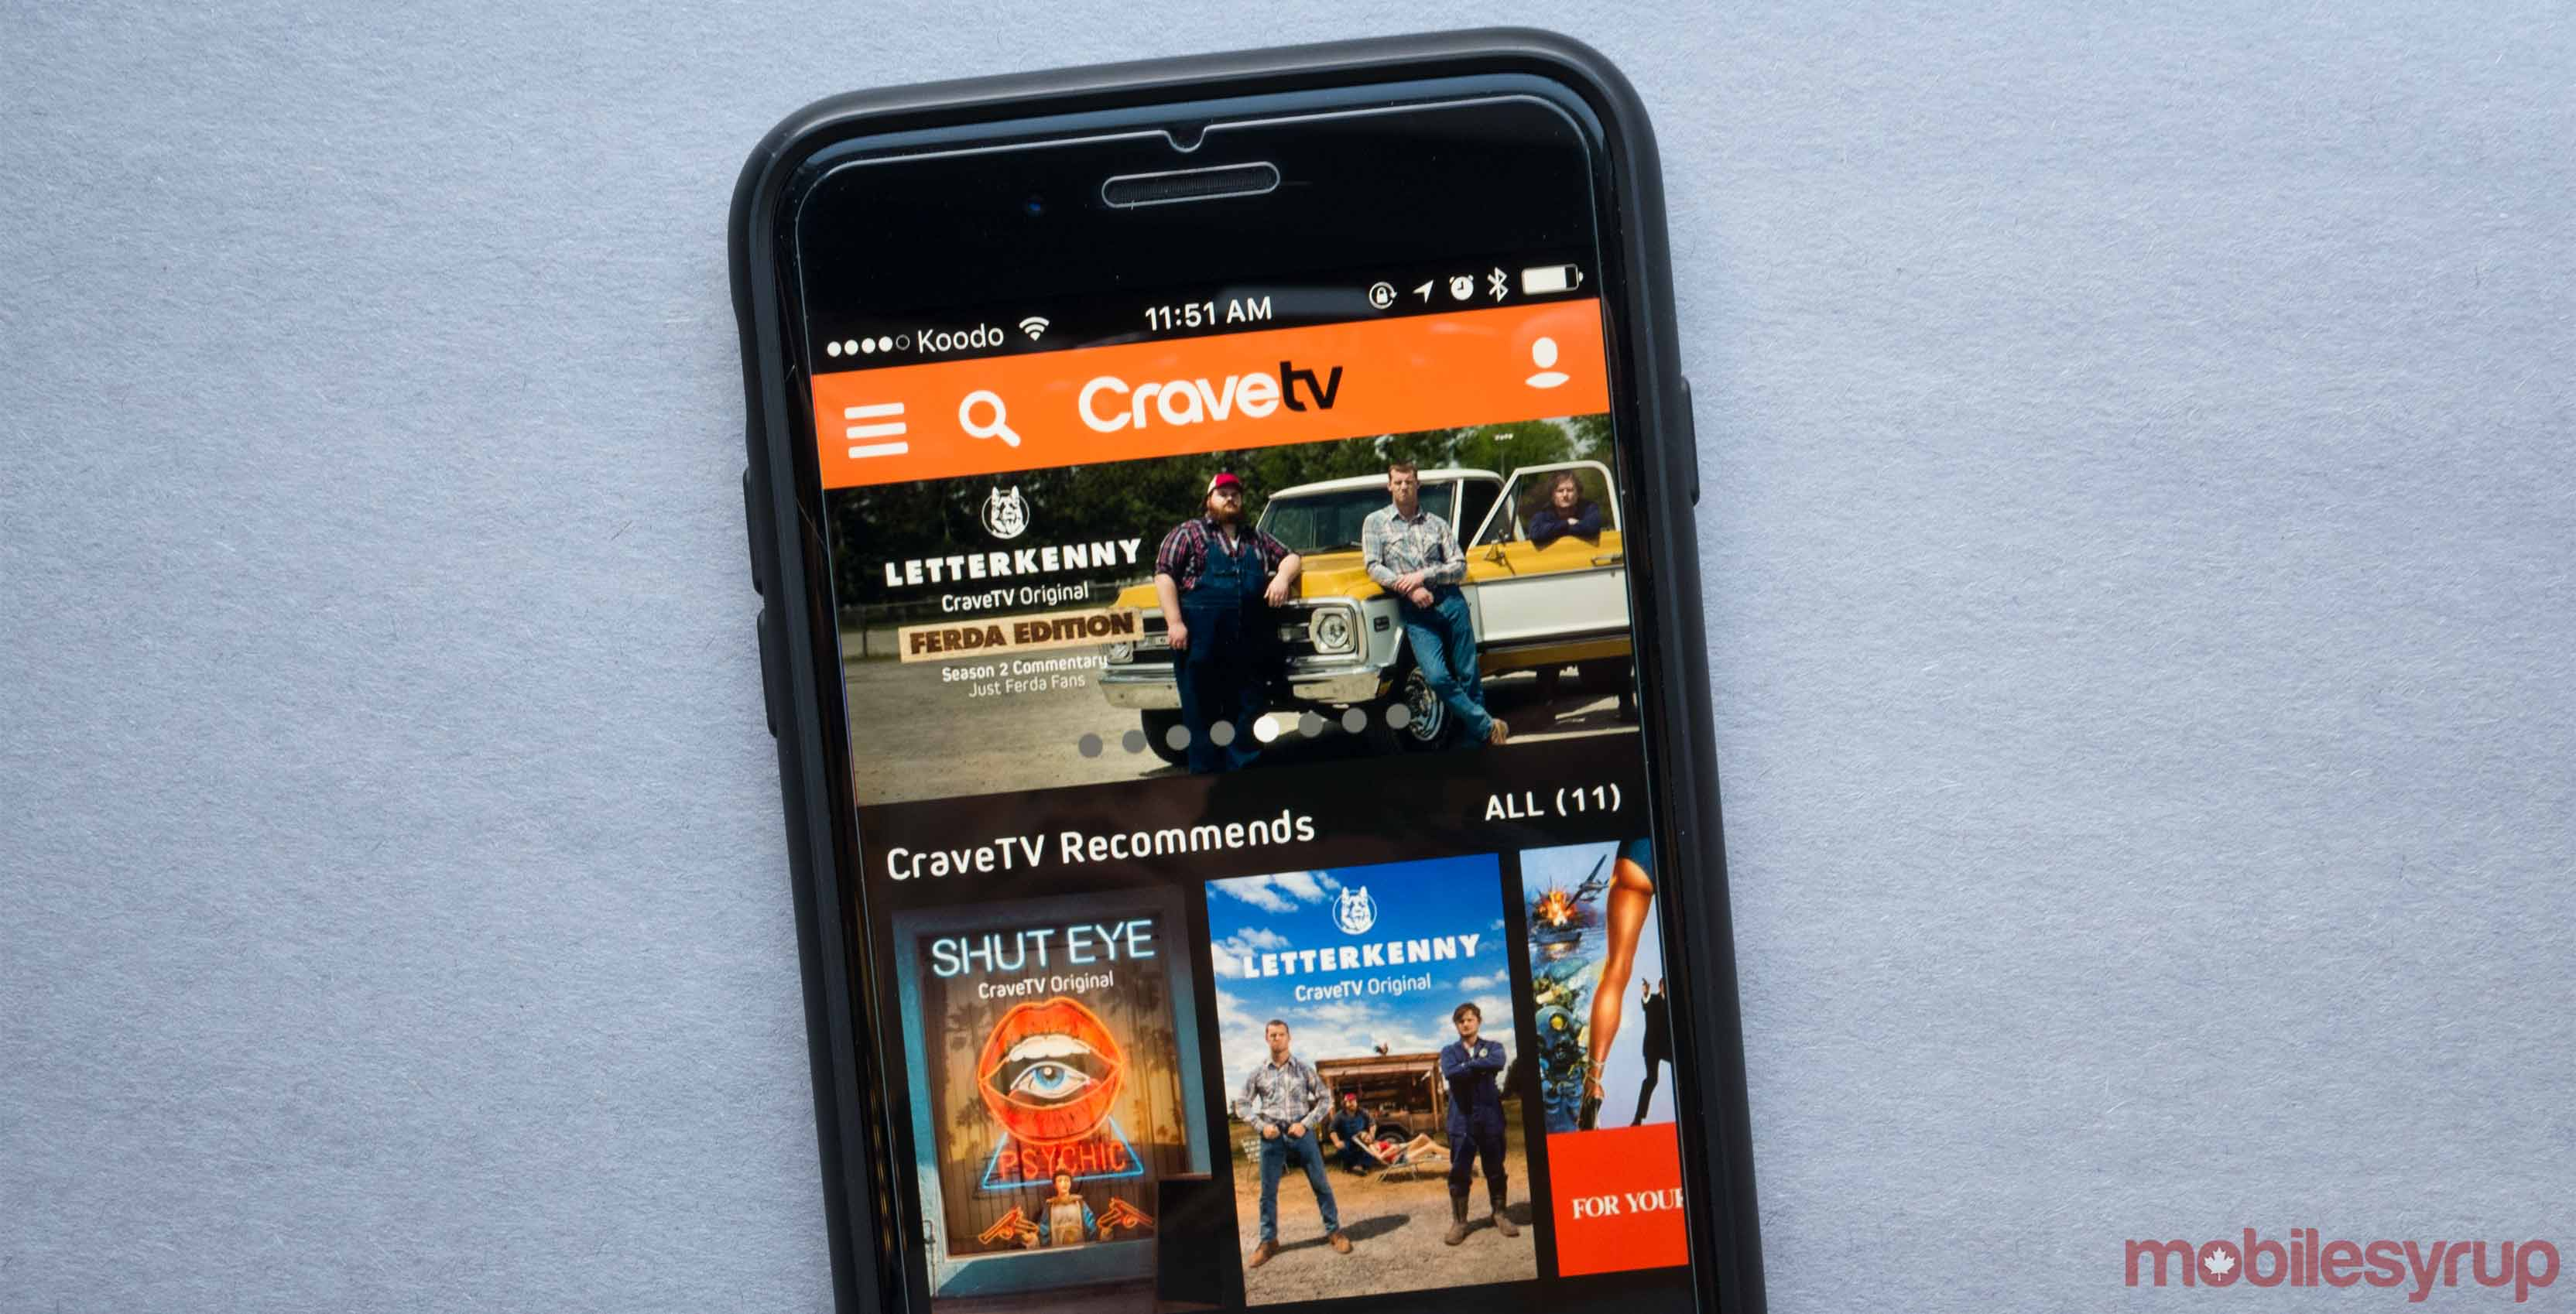 Crave TV app on a smartphone